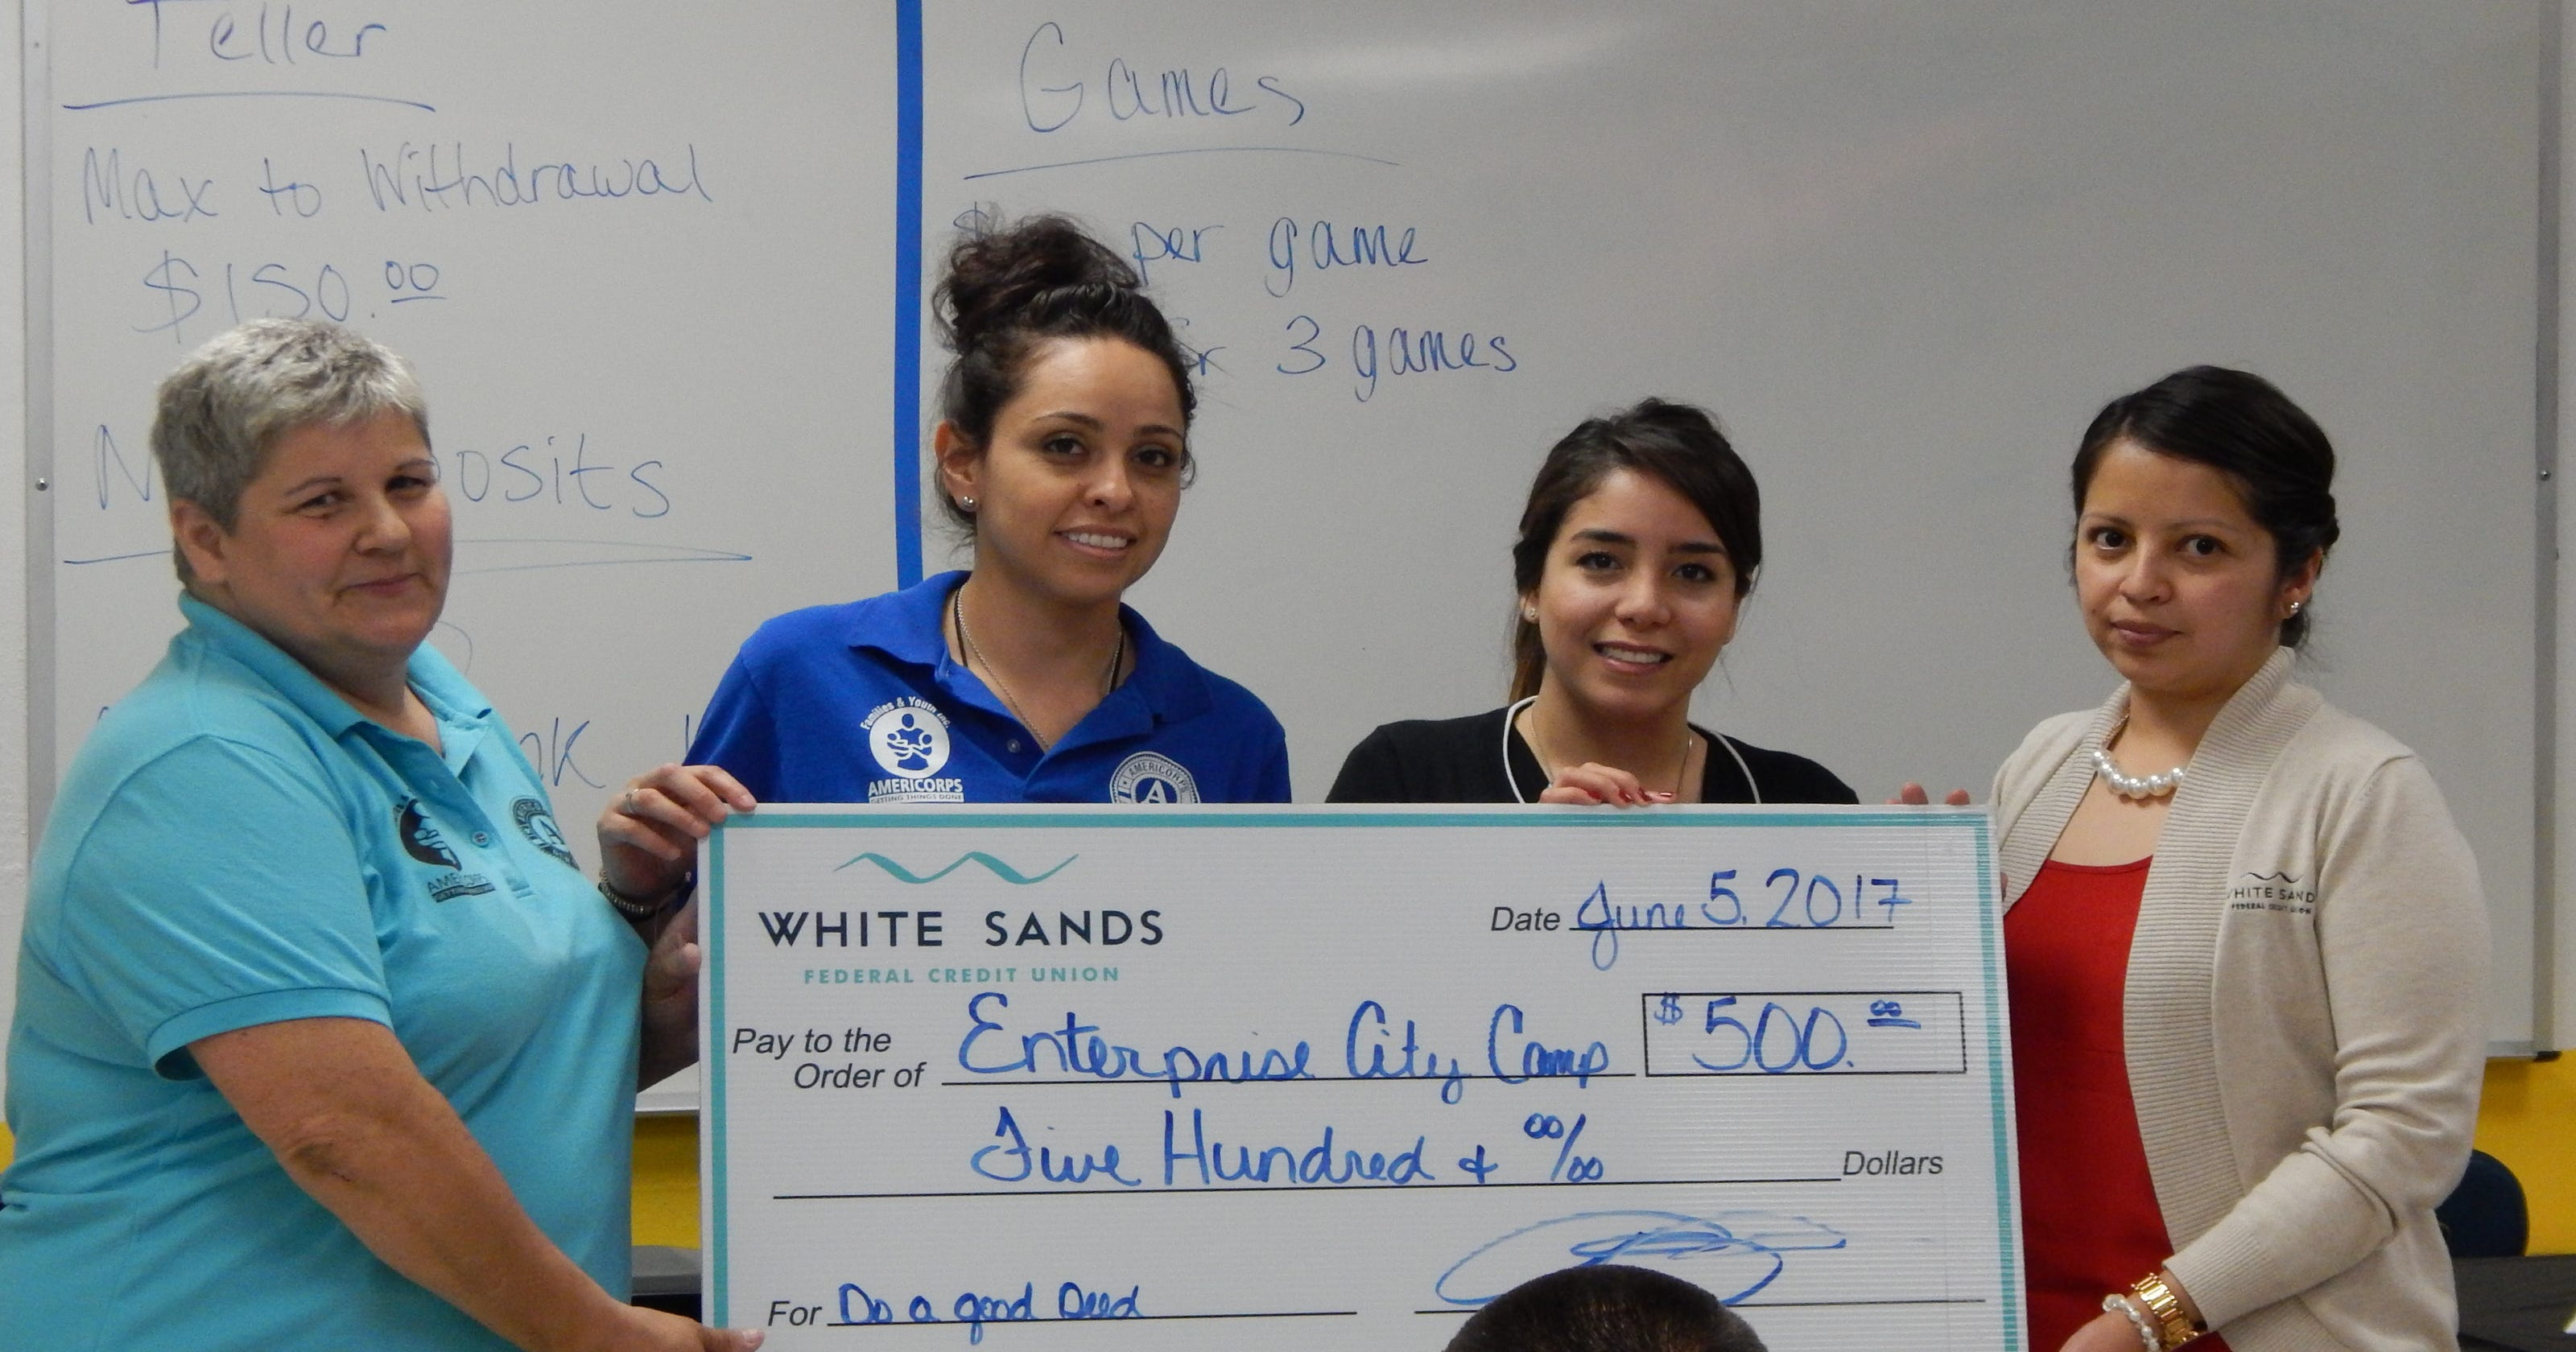 White Sands Fcu Supporting Future Business Leaders